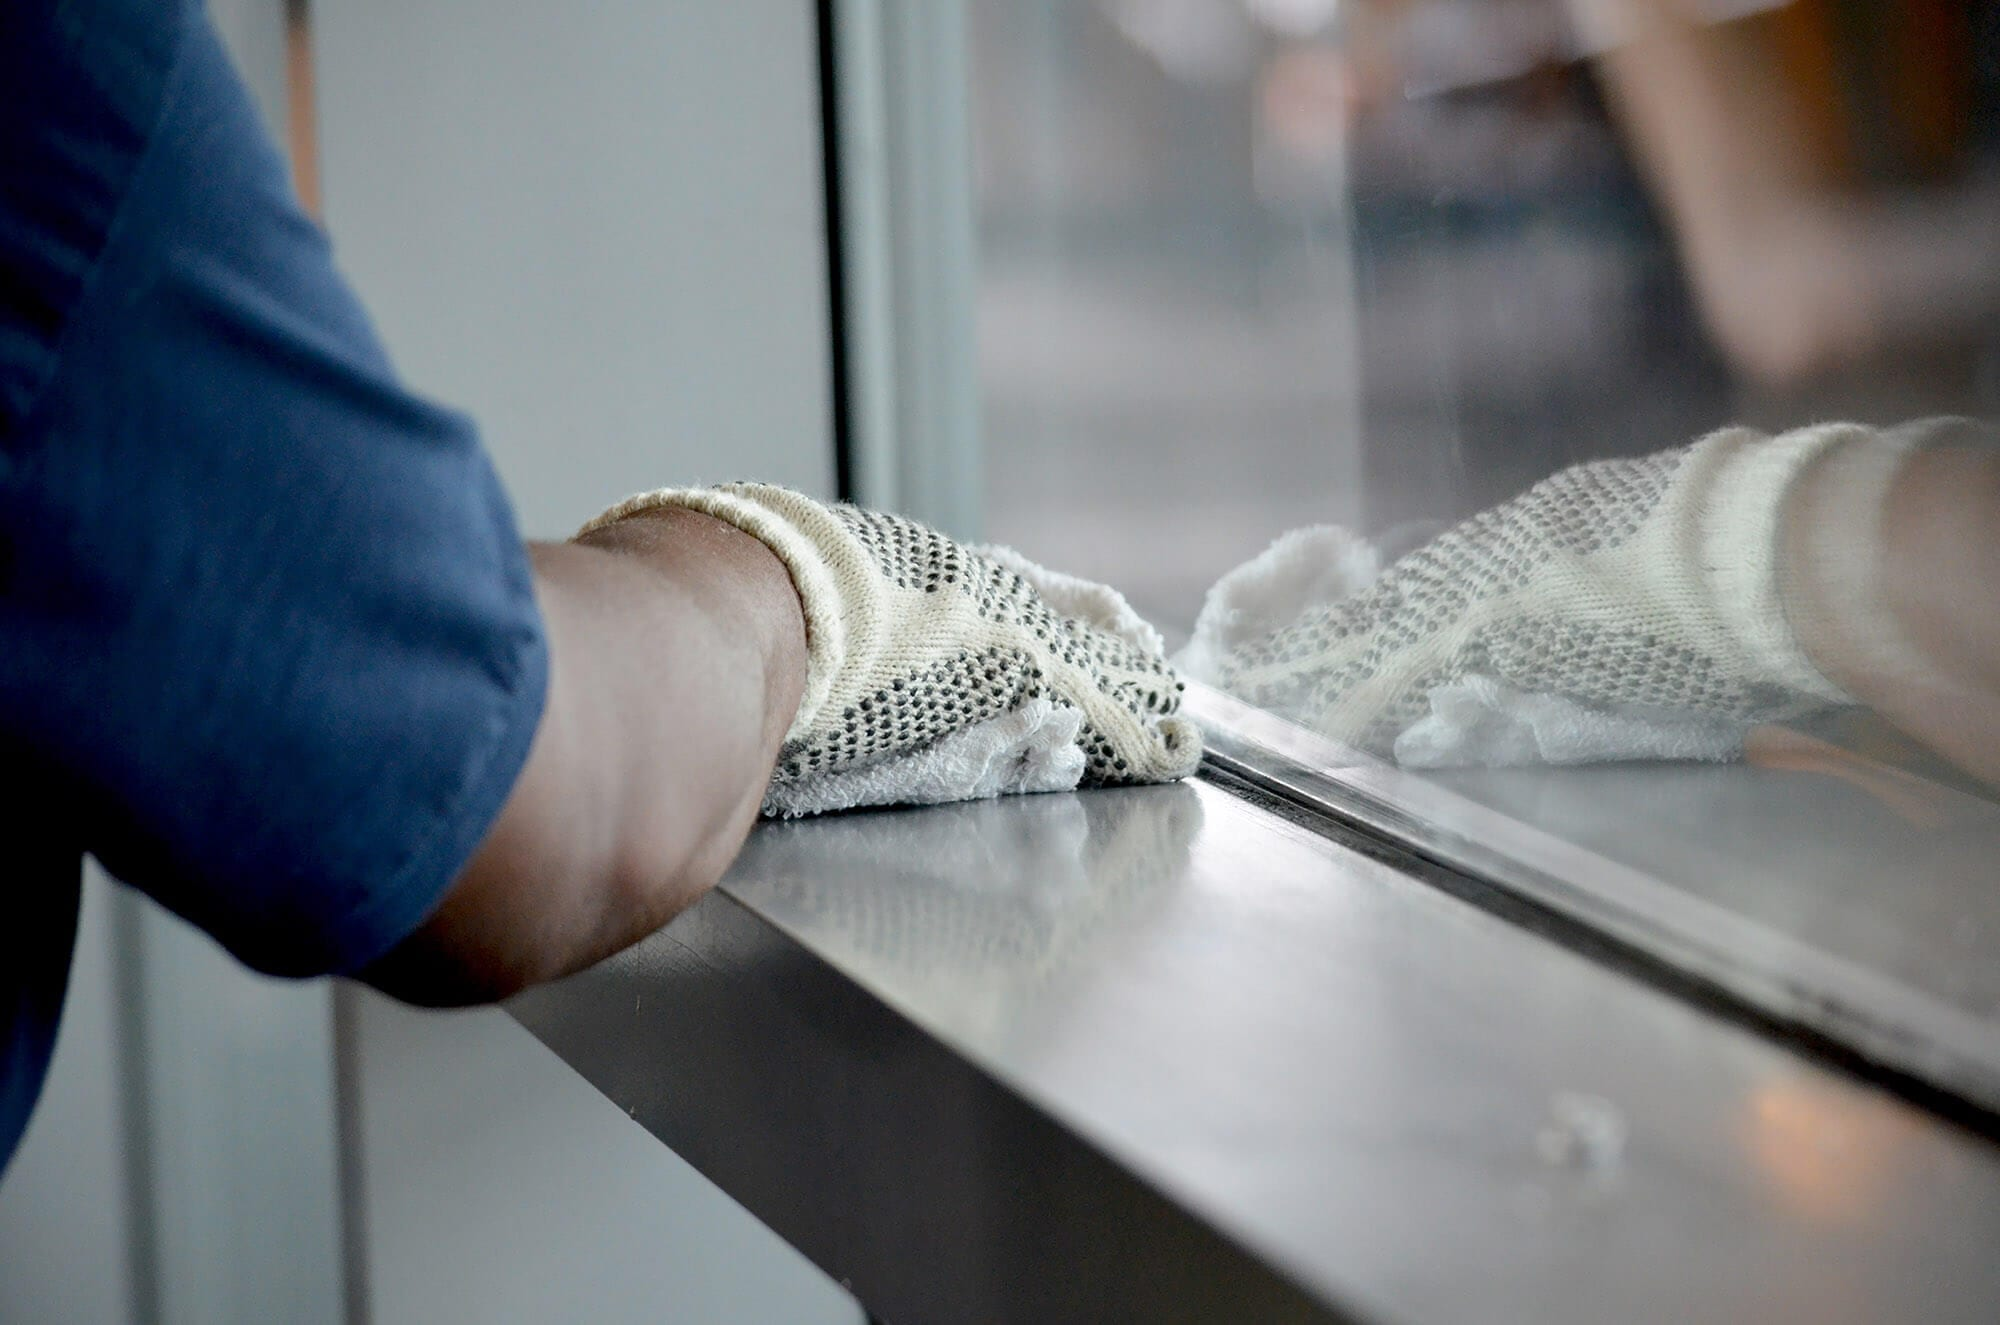 David cleans the window sill at the Staten Island Ferry Terminal